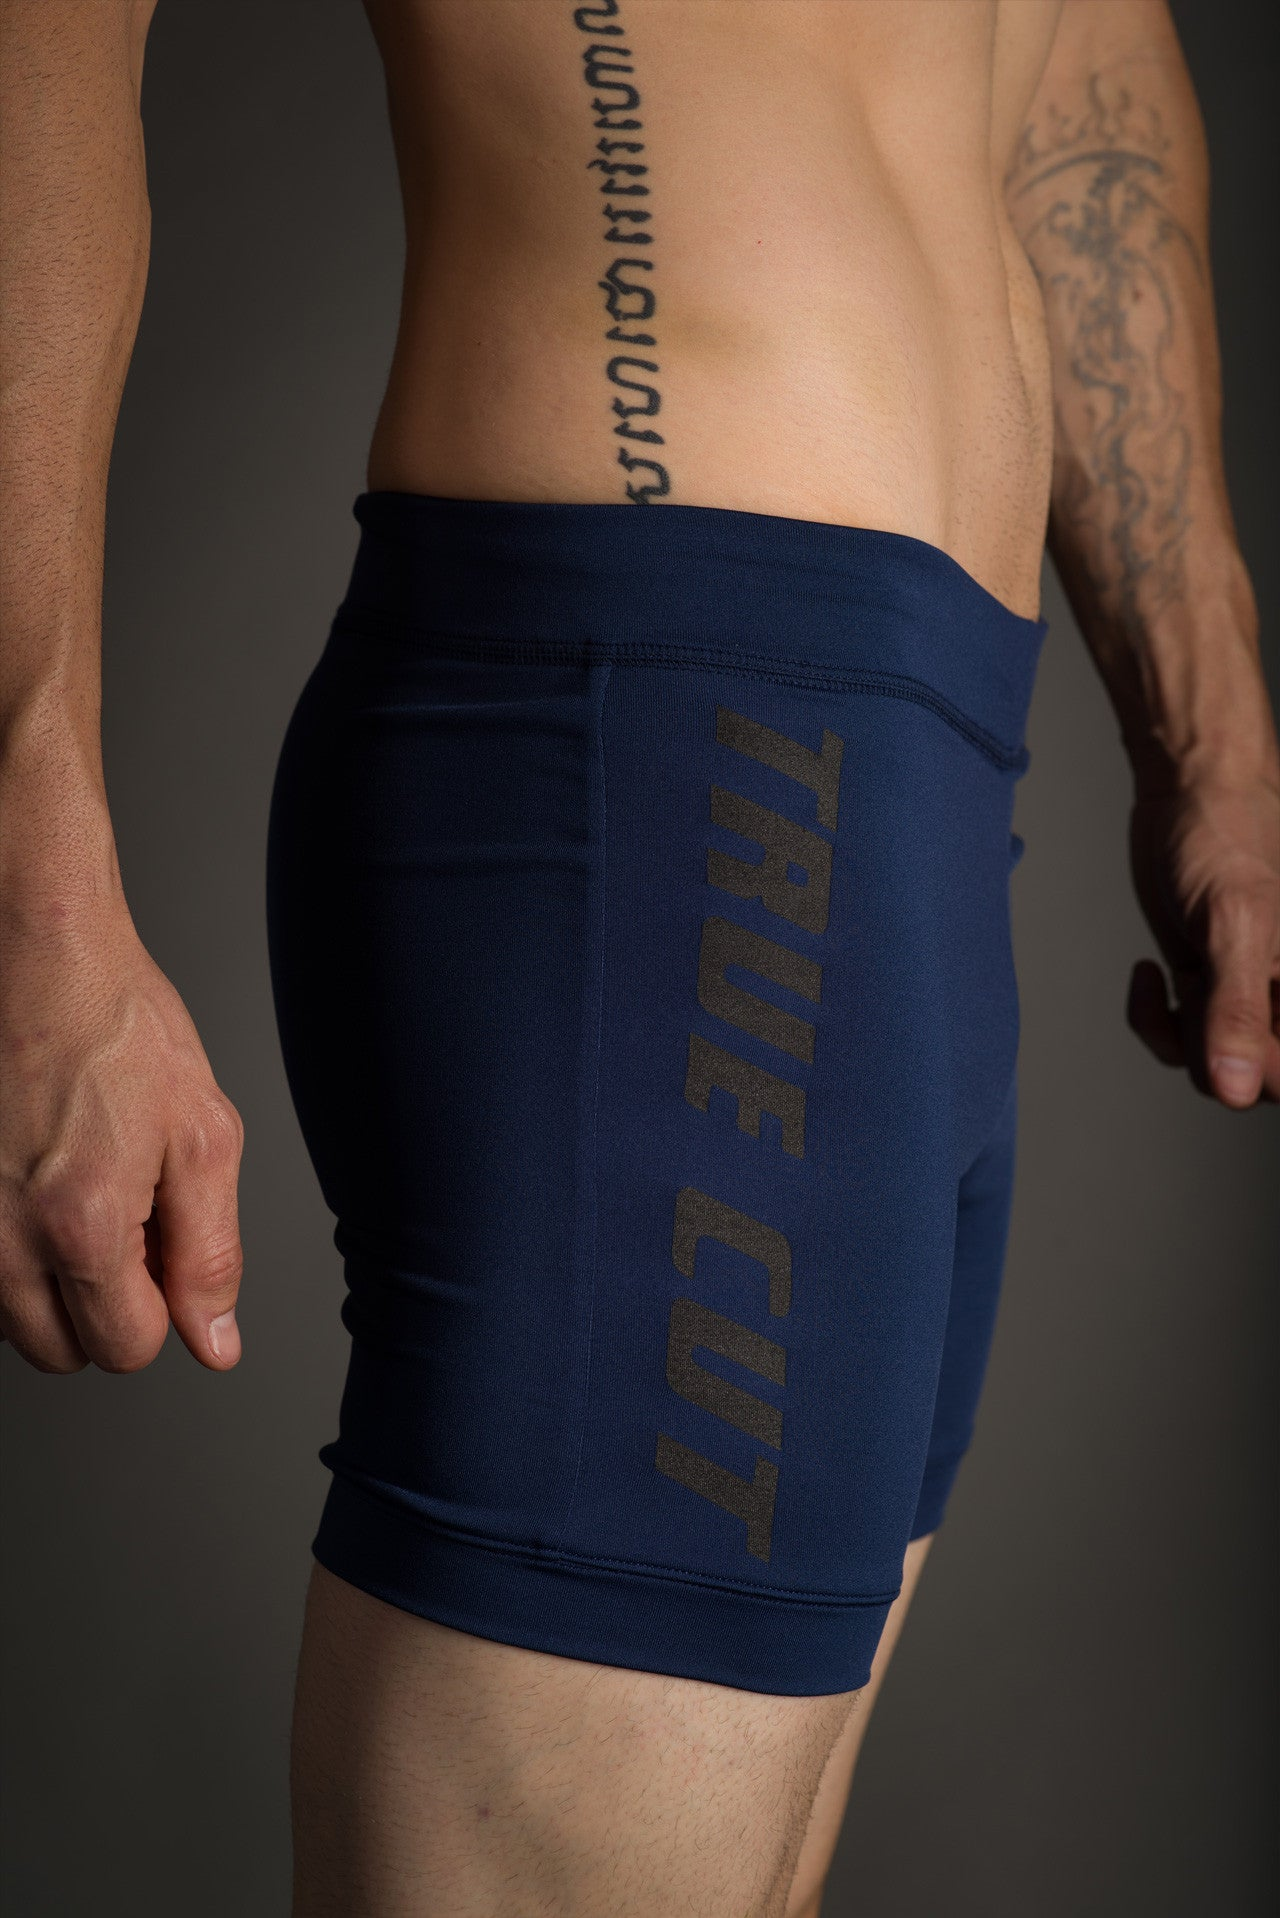 Blue Hot Yoga Cross Training Shorts